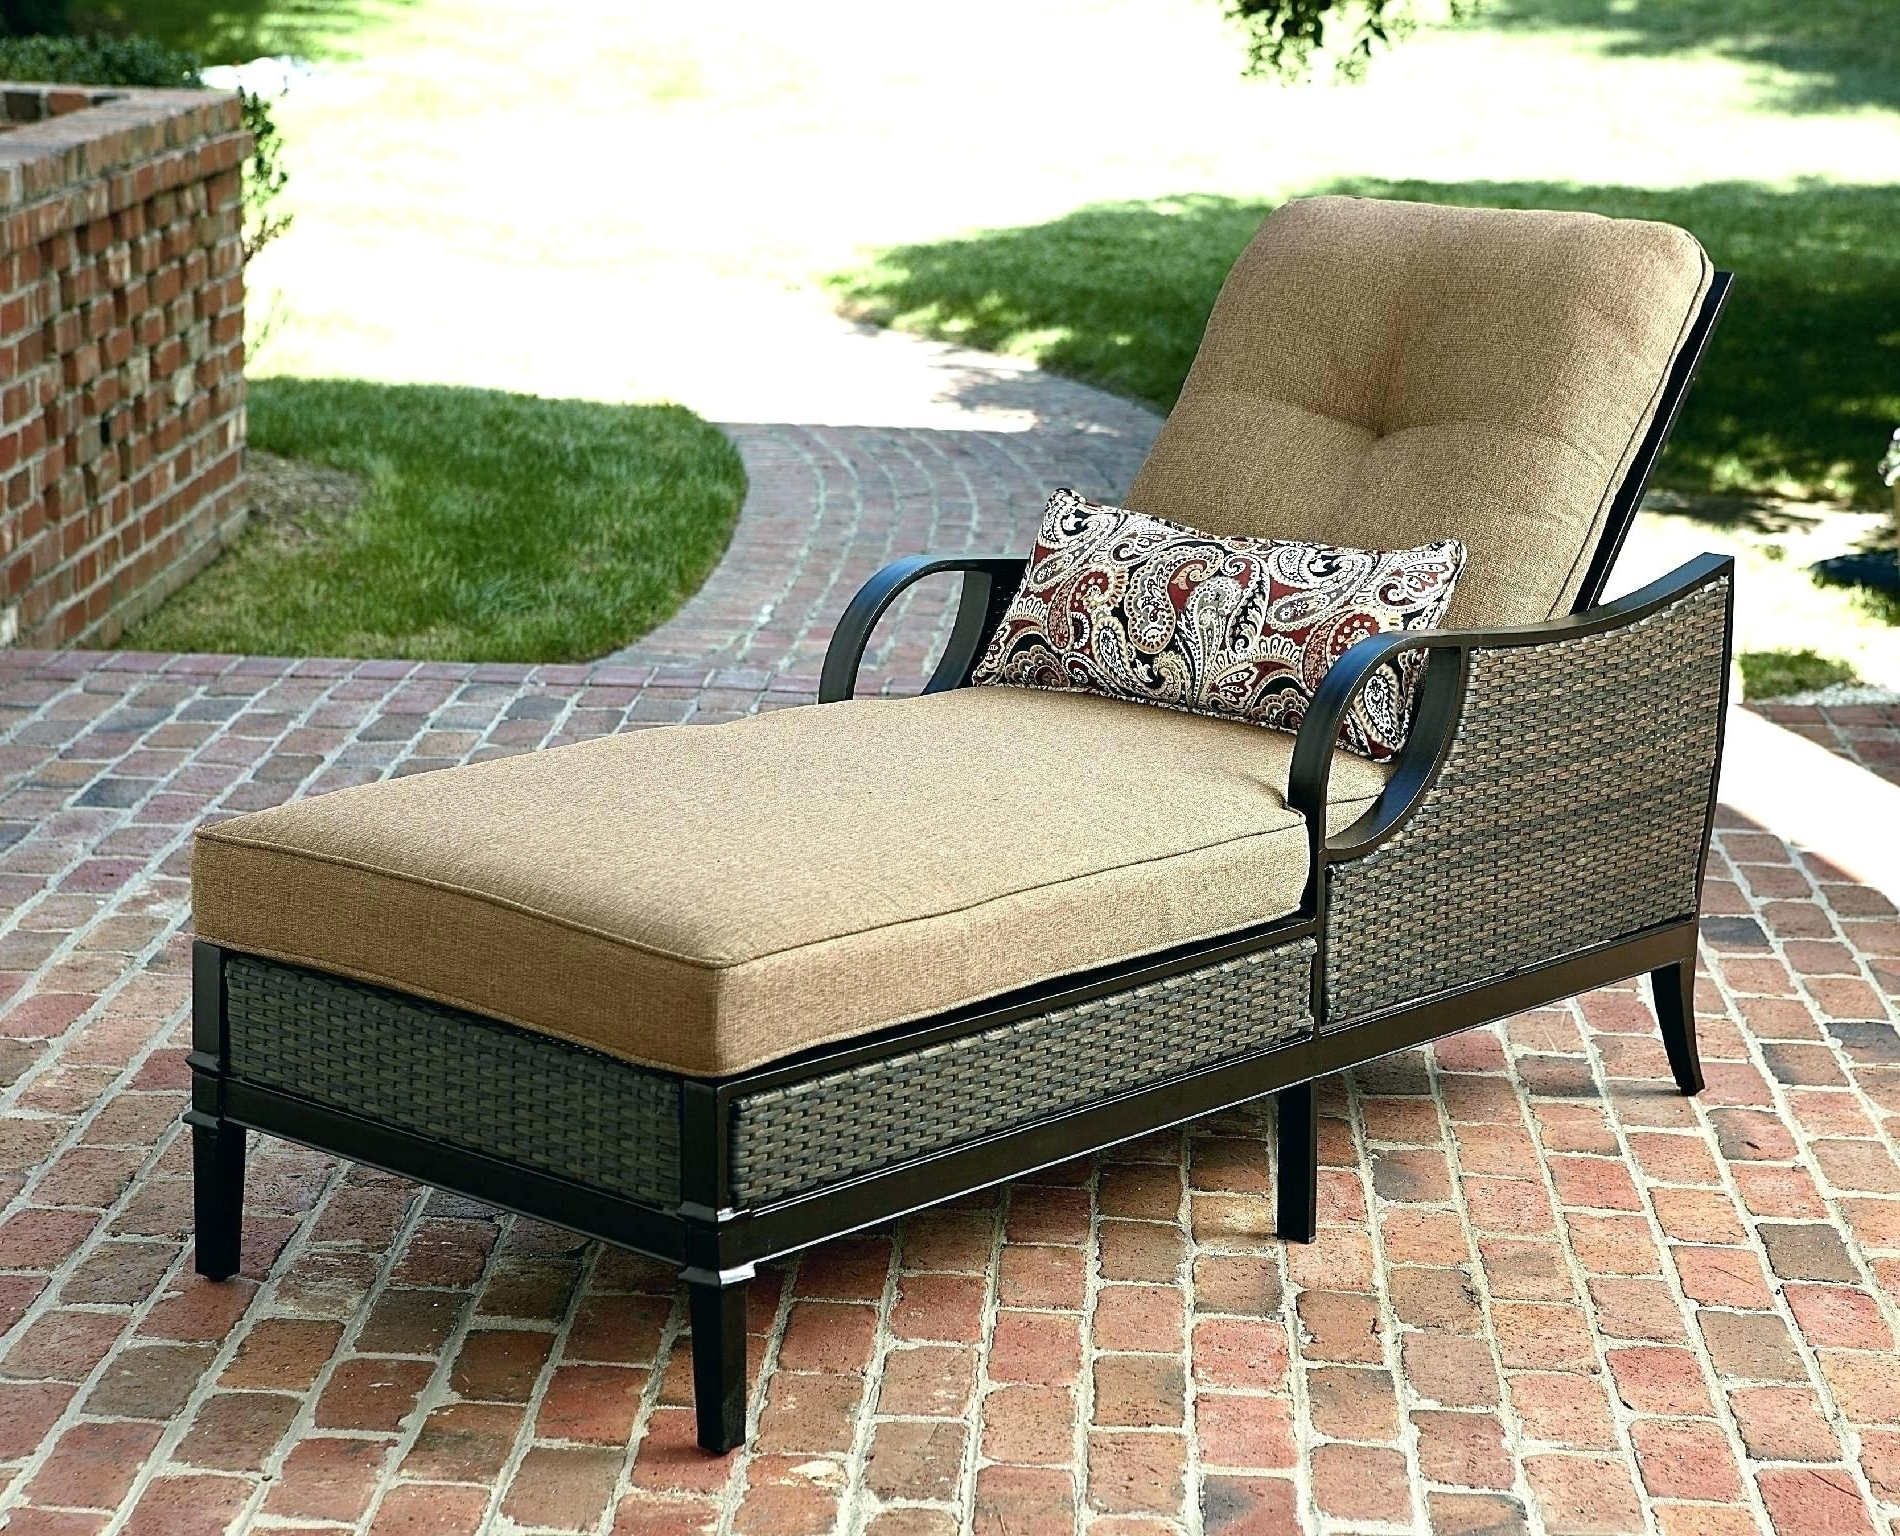 Newest Walmart Chaise Lounge Cushions With Regard To Walmart Chaise Lounge Cushions S Outdoor Double Cushion Patio (View 8 of 15)